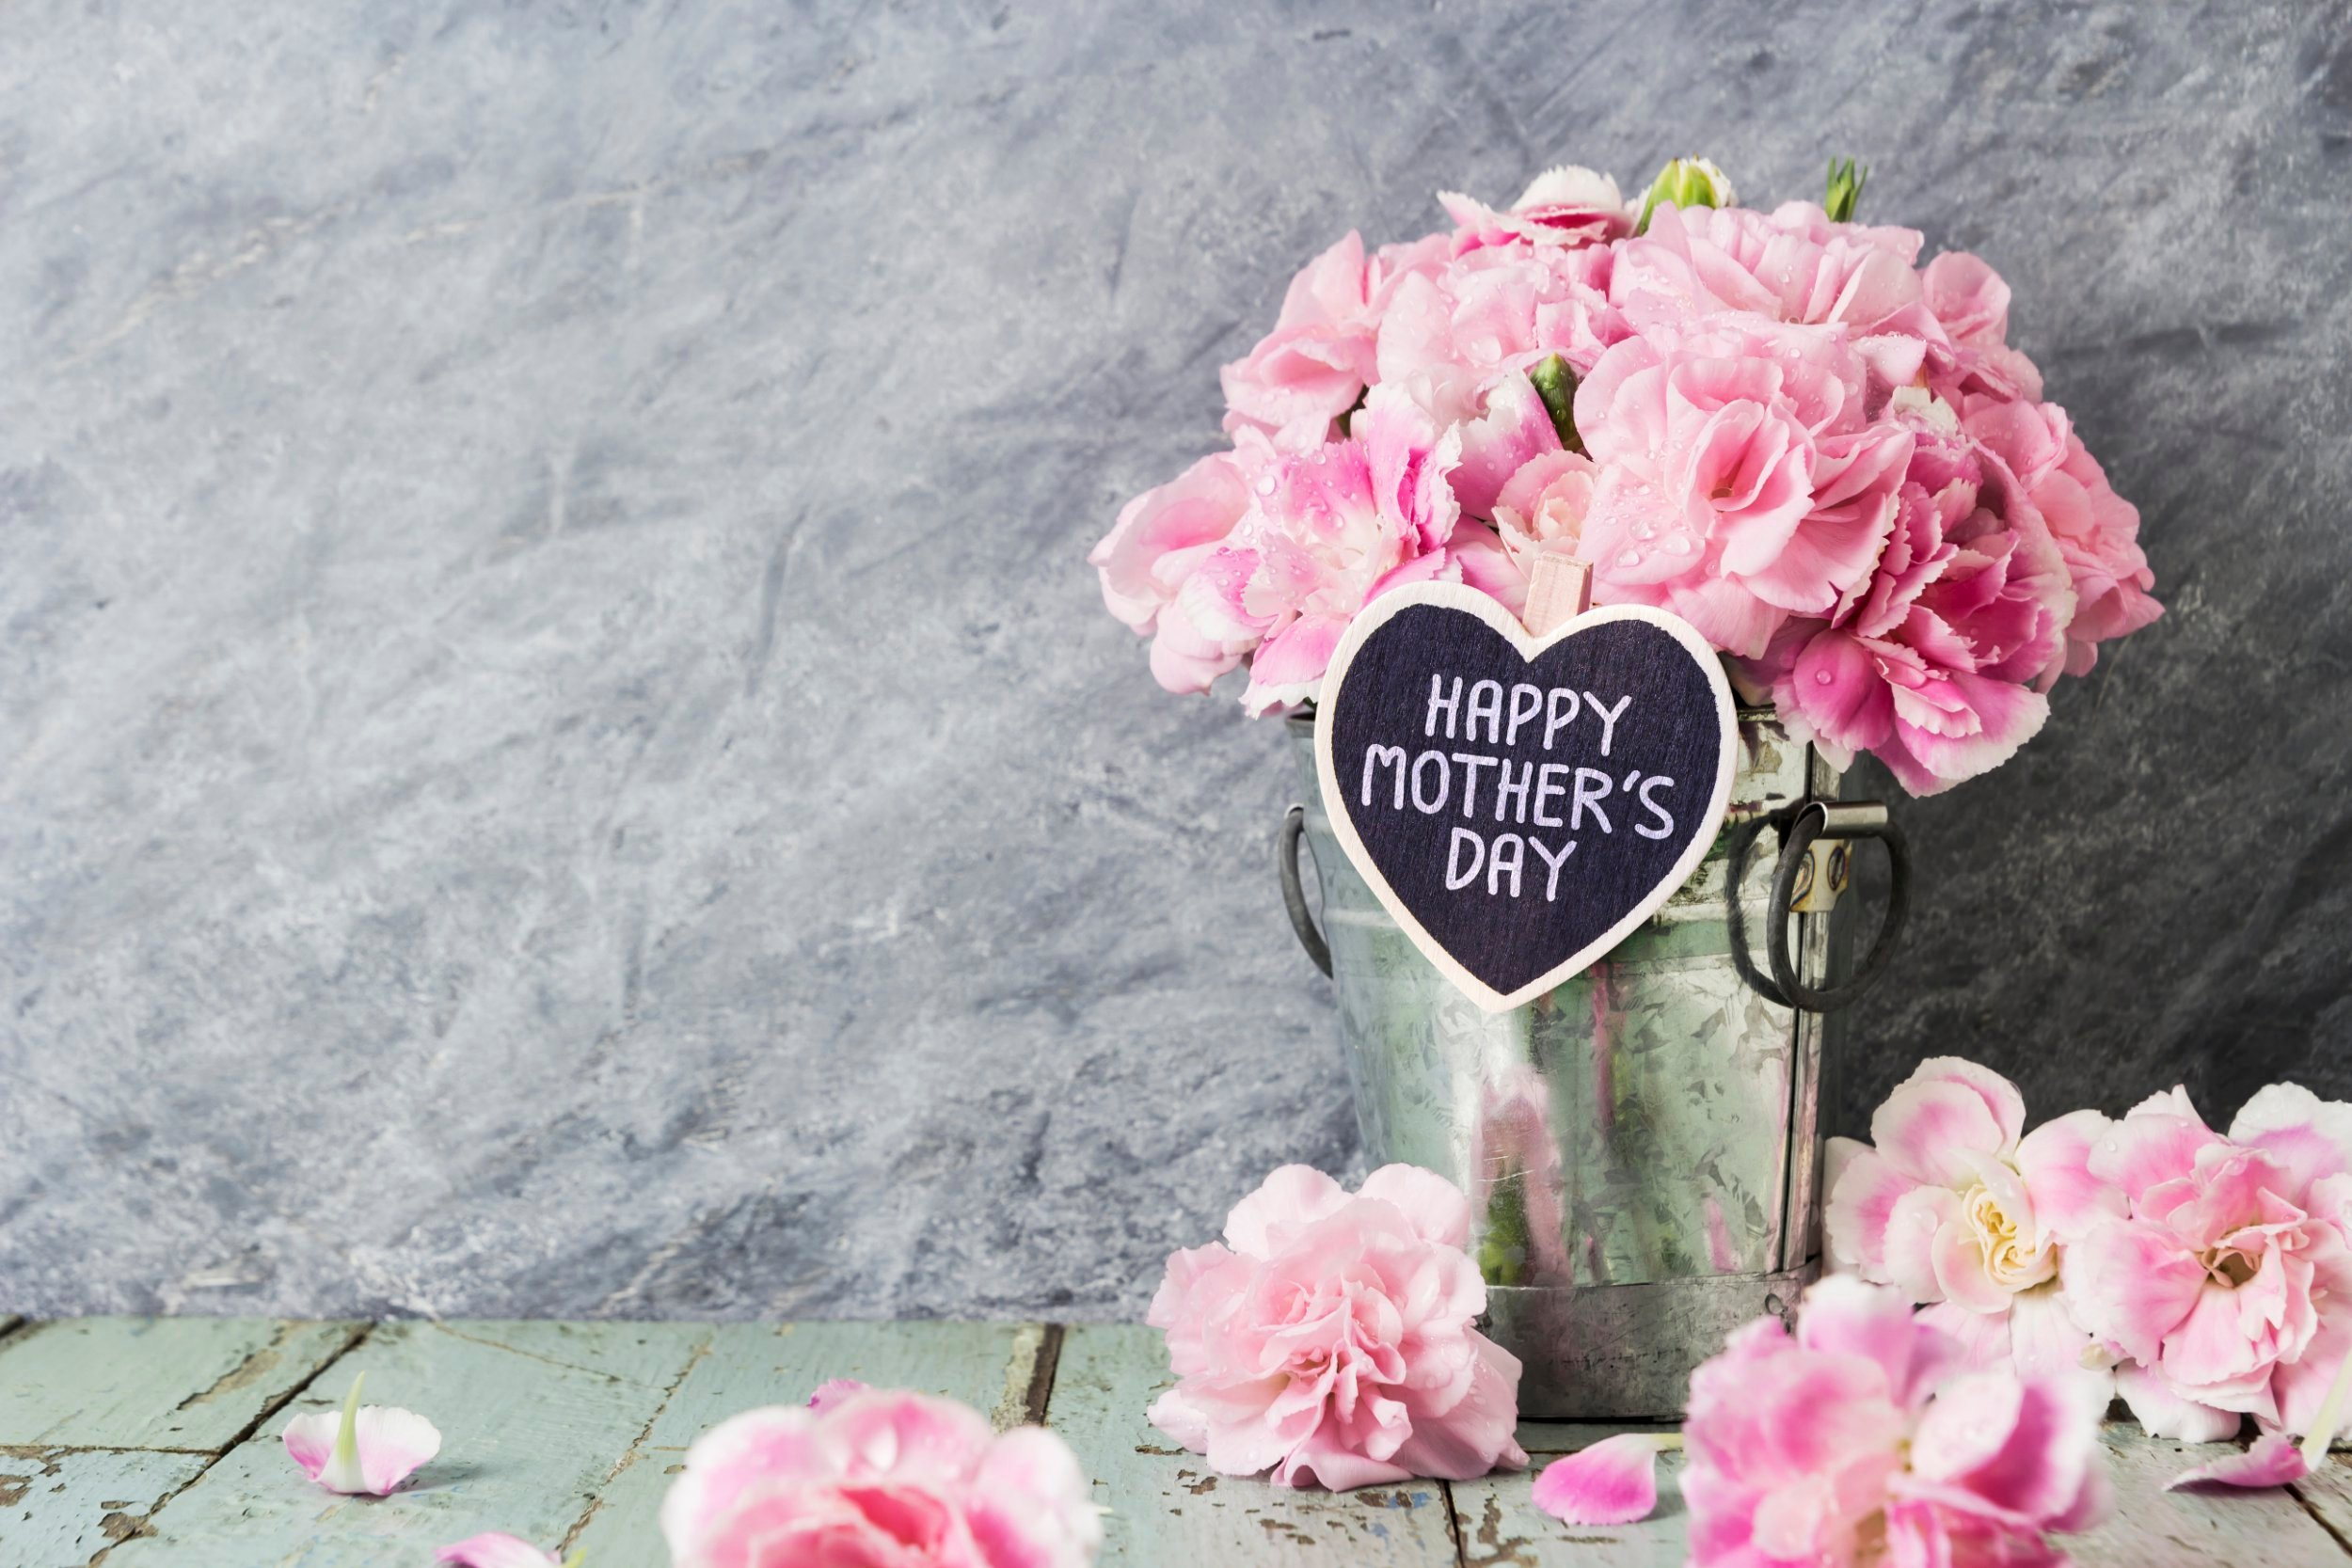 Mothers Day 2019 Images, Wallpapers Pictures Photos